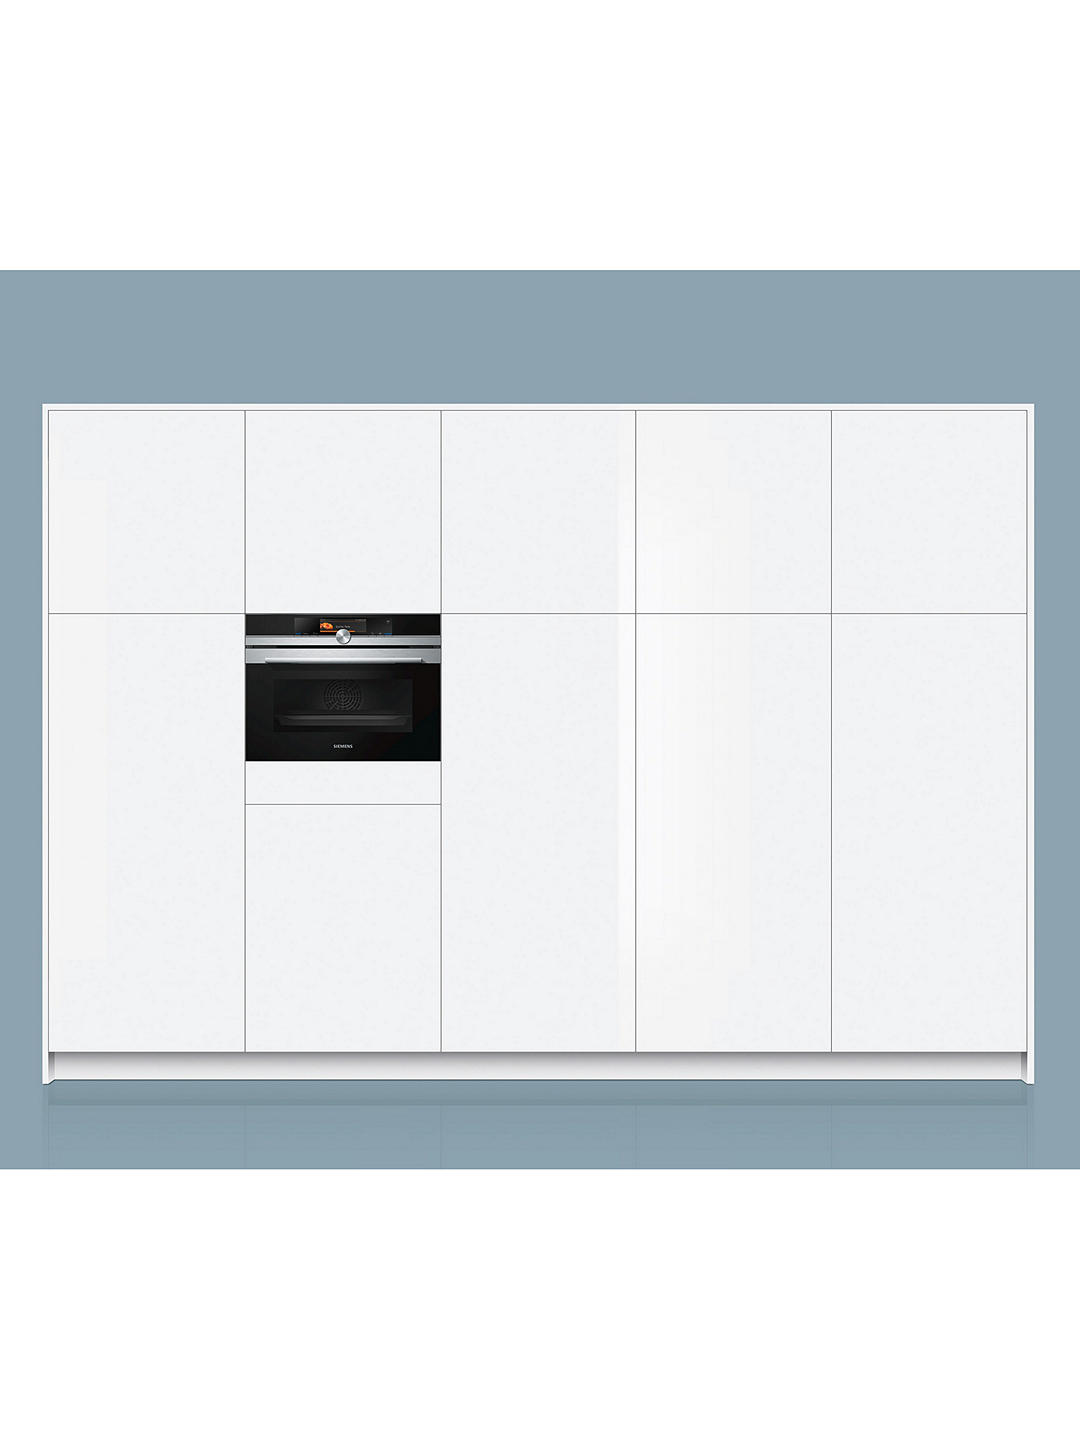 Buy Siemens CS658GRS6B Built-In Single Compact Steam Oven, Black Online at johnlewis.com